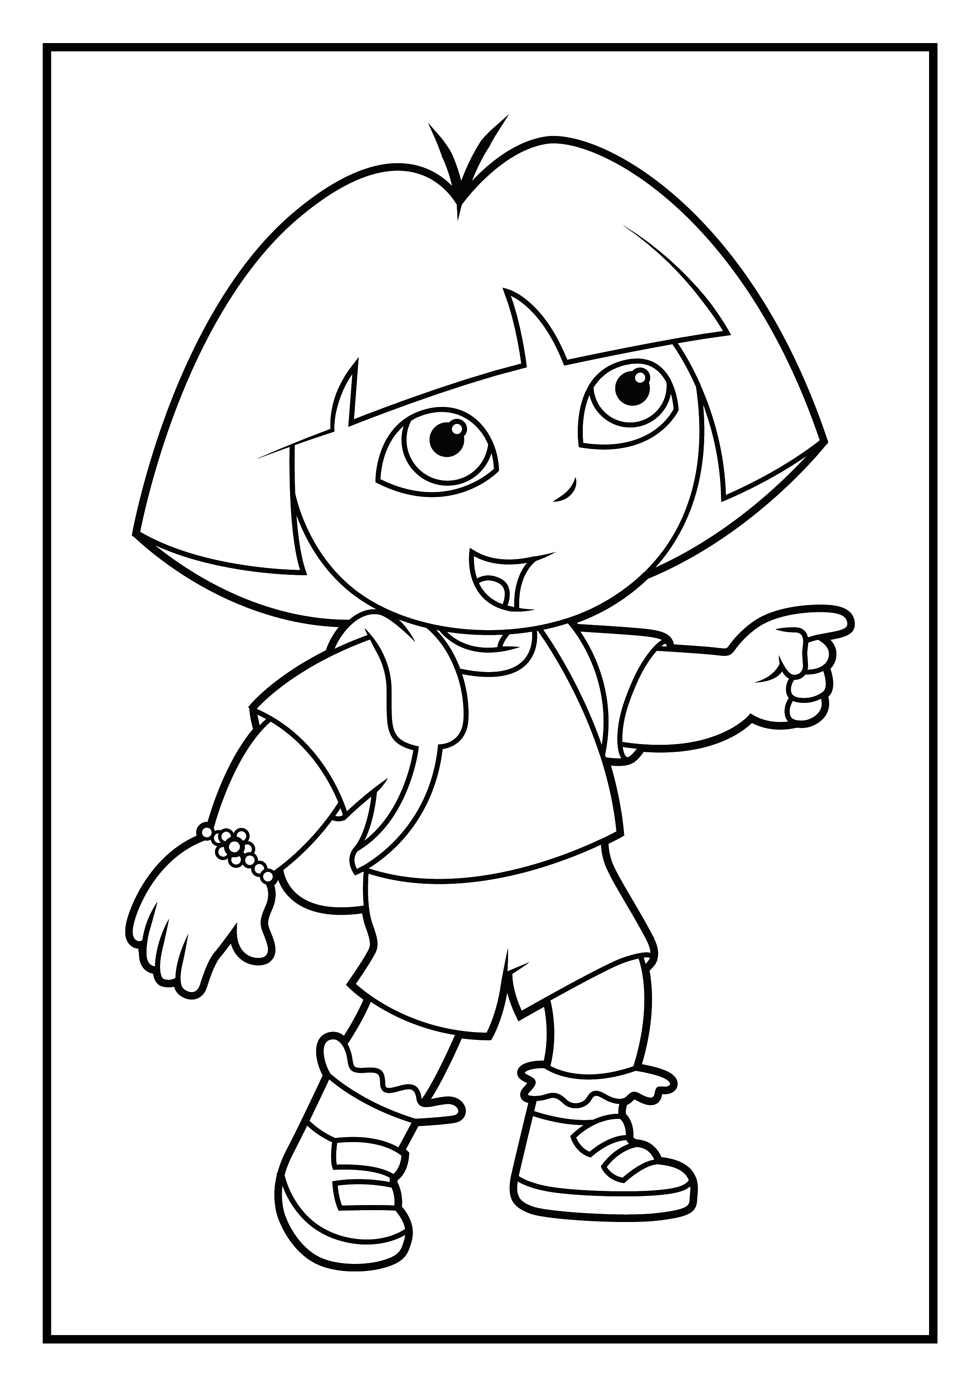 Benny The Bull Coloring Pages